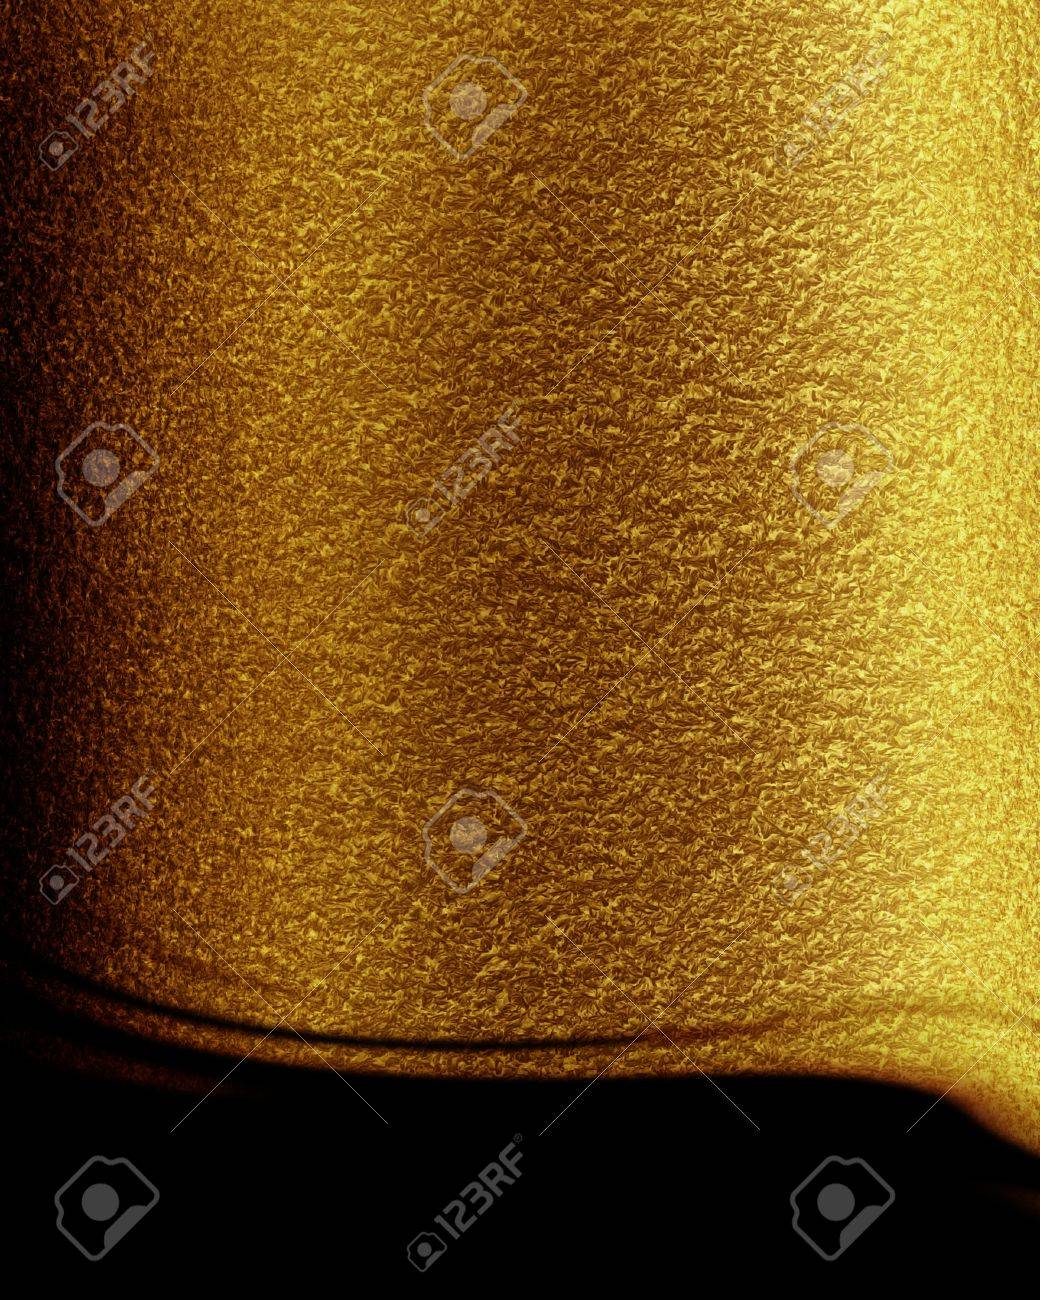 Golden background with some reflected light and highlights Stock Photo - 14840860